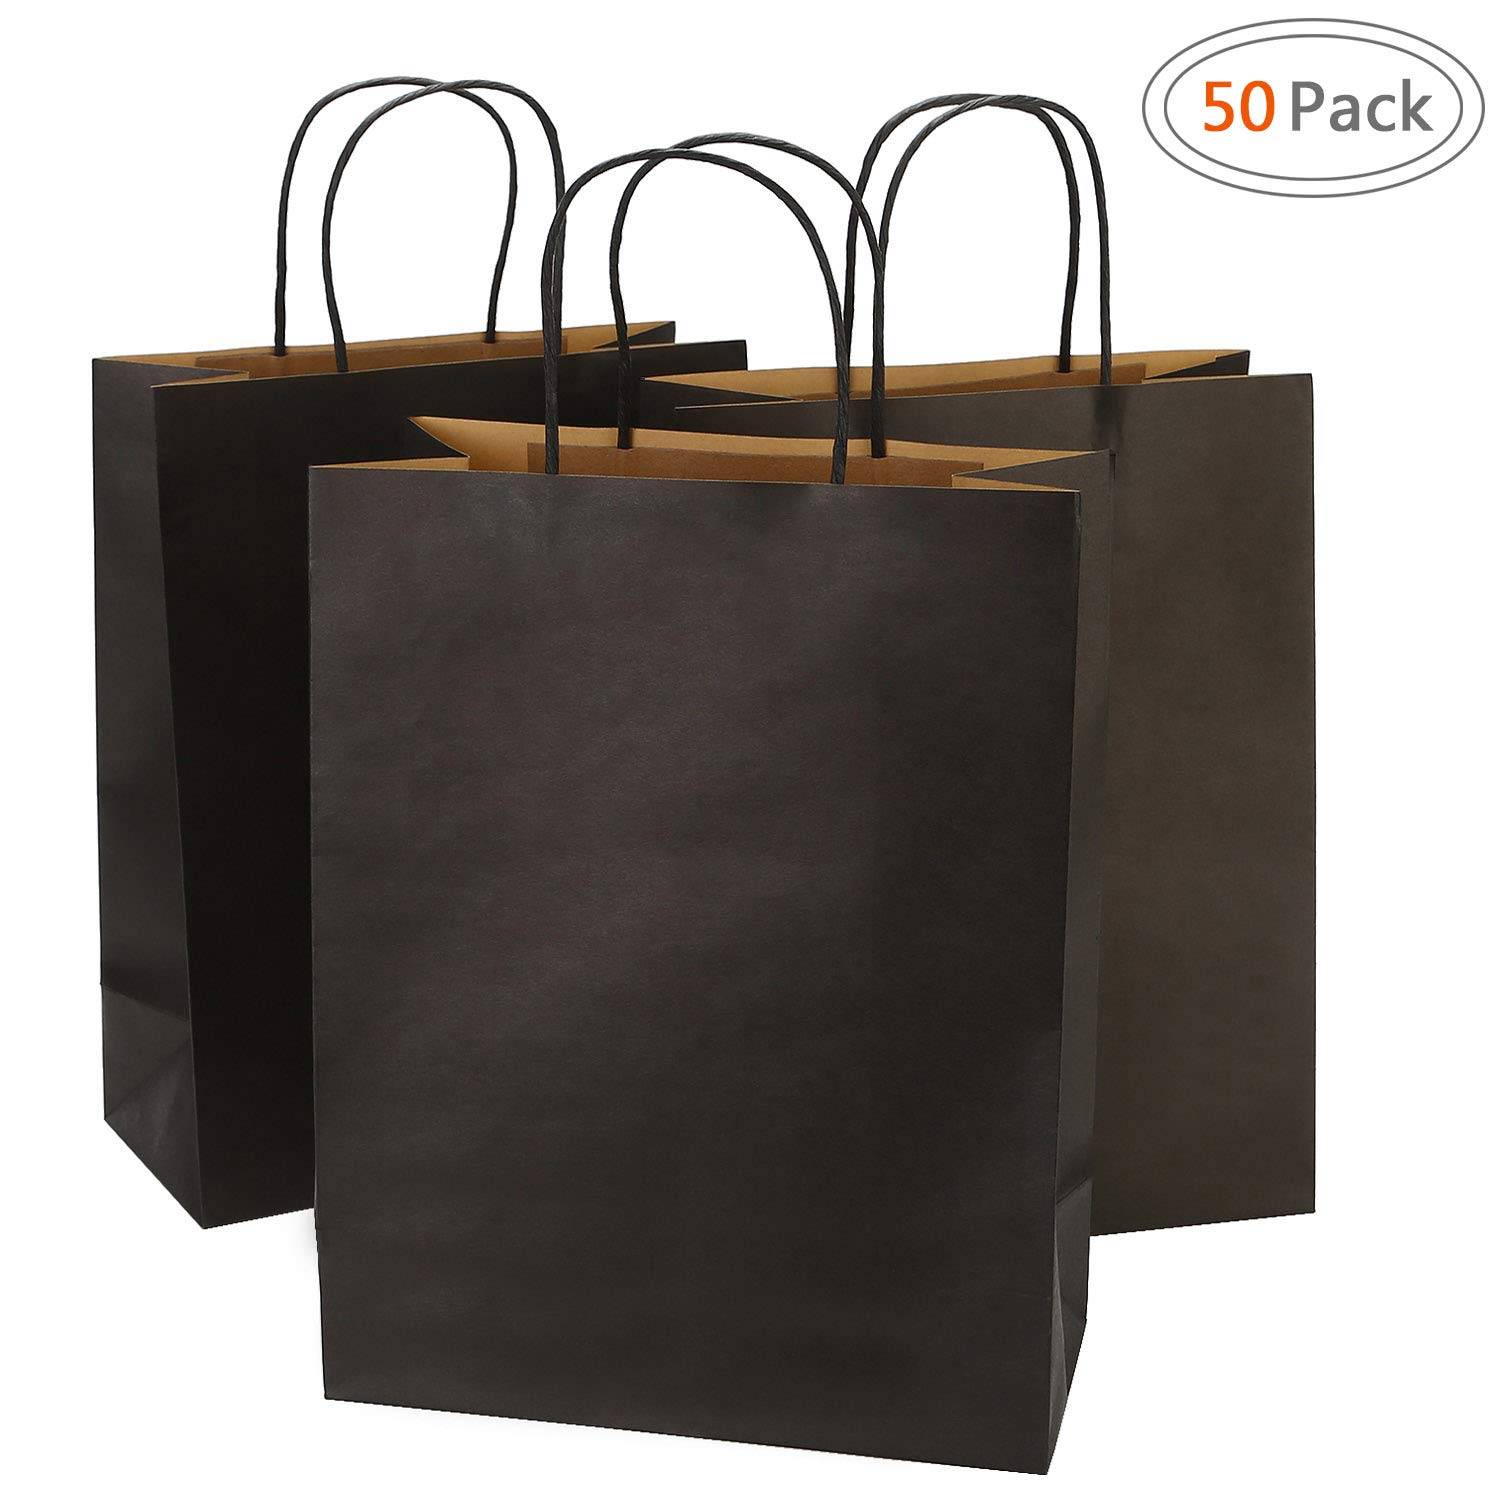 Road 10x5x13 Inches 50pcs Black Kraft Paper Bags with Handle, Gift , Shopping Bag, Merchandise , Party Bag